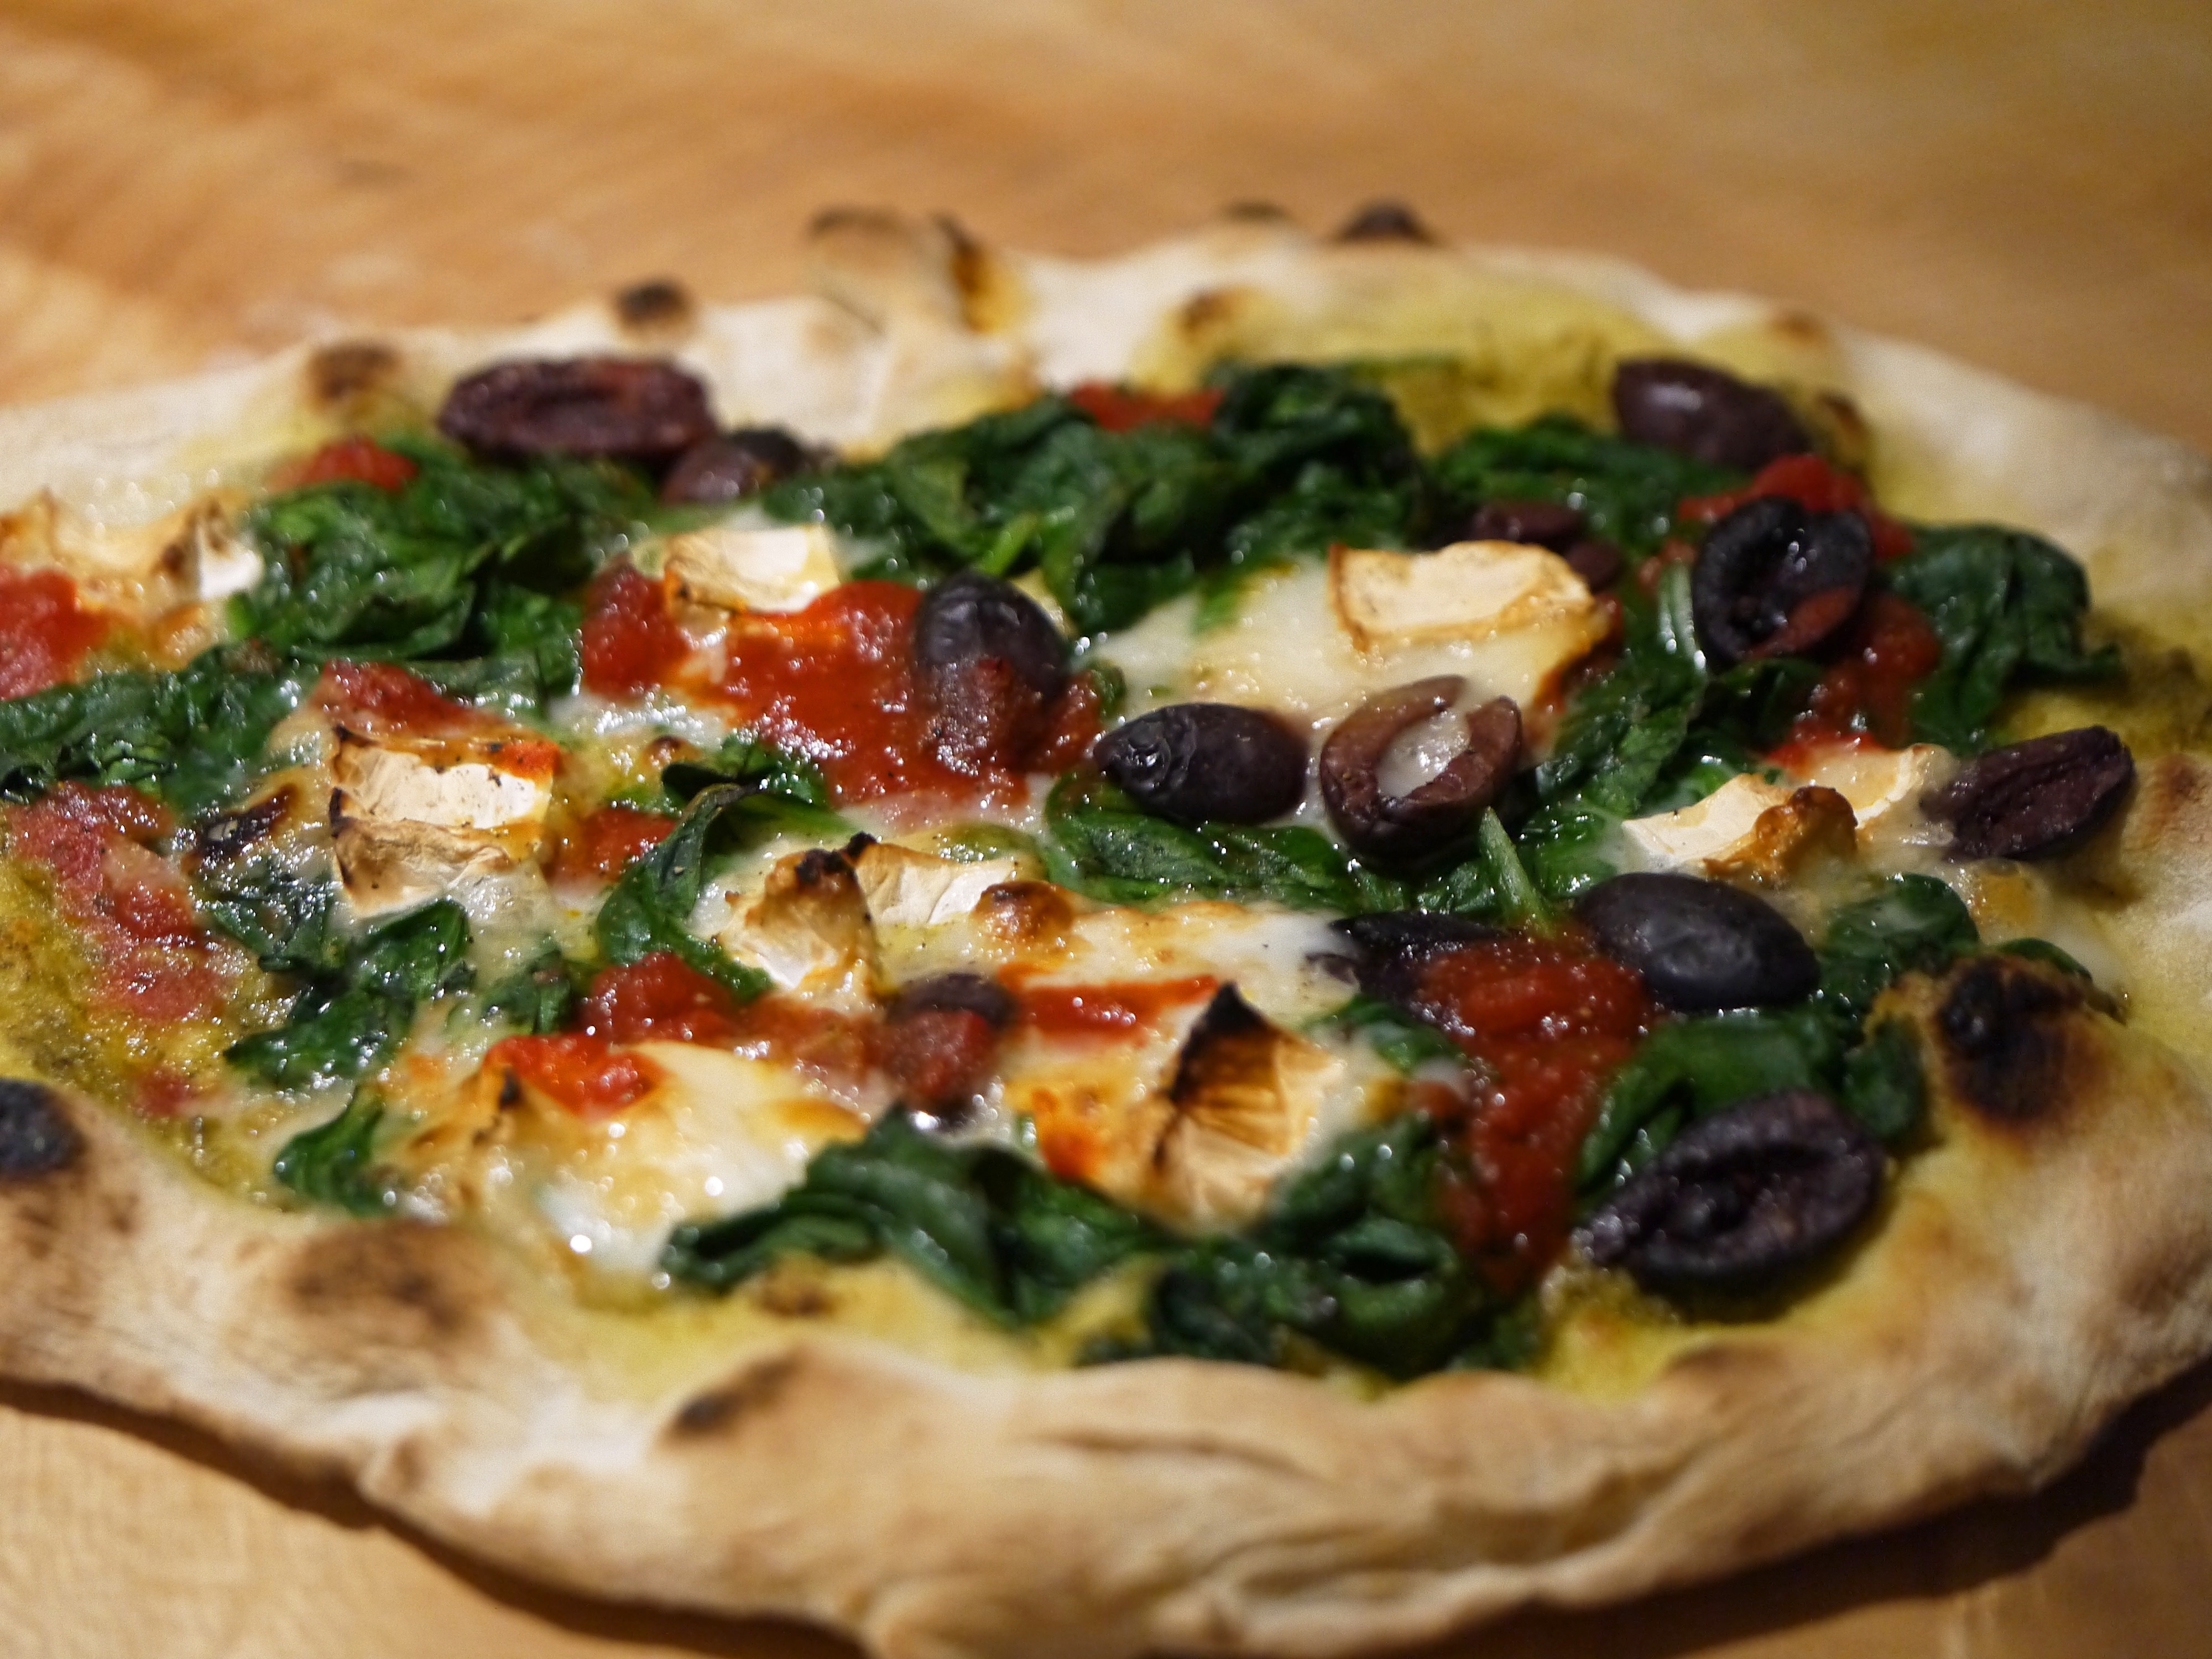 A few different pizzas on the Uuni 2S